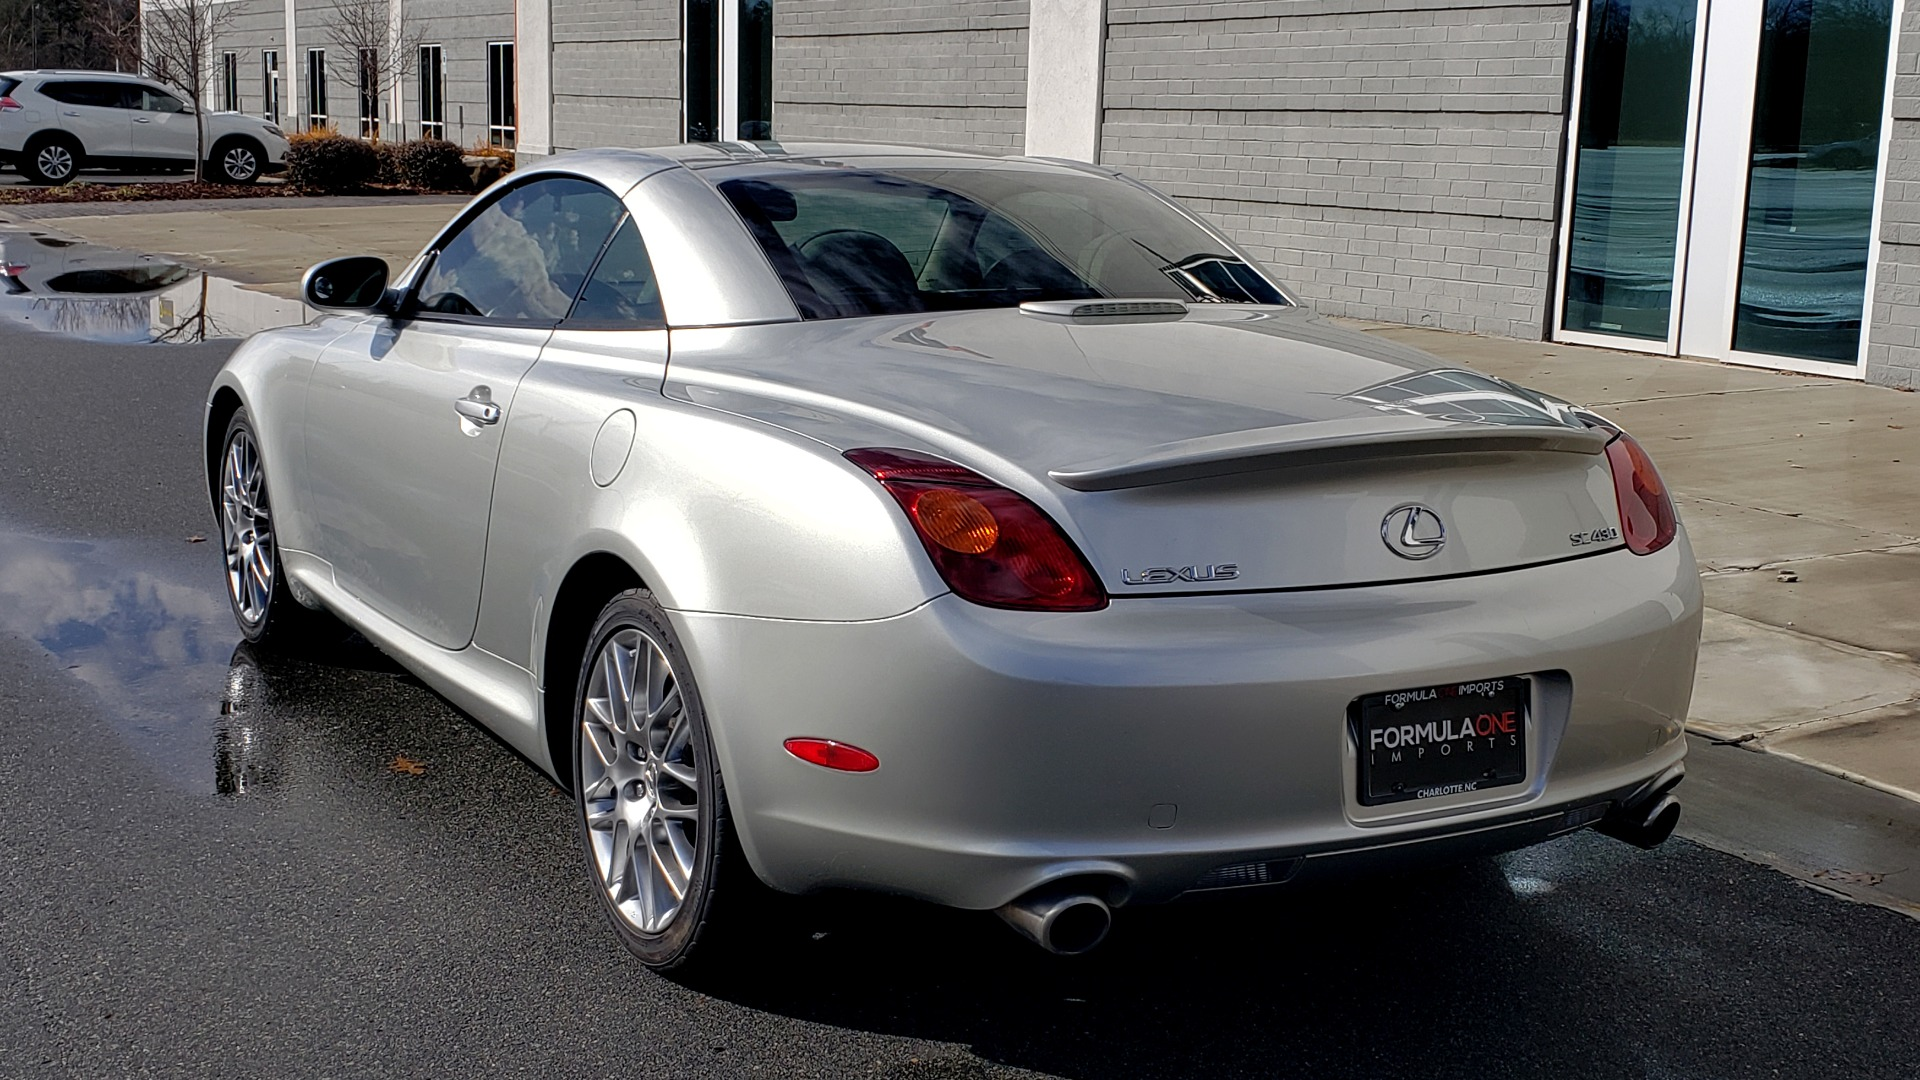 Used 2004 Lexus SC 430 CONVERTIBLE / 4.3L V8 / 5-SPD AUTO / MARK LEVINSON / 18IN WHEELS for sale $14,995 at Formula Imports in Charlotte NC 28227 4